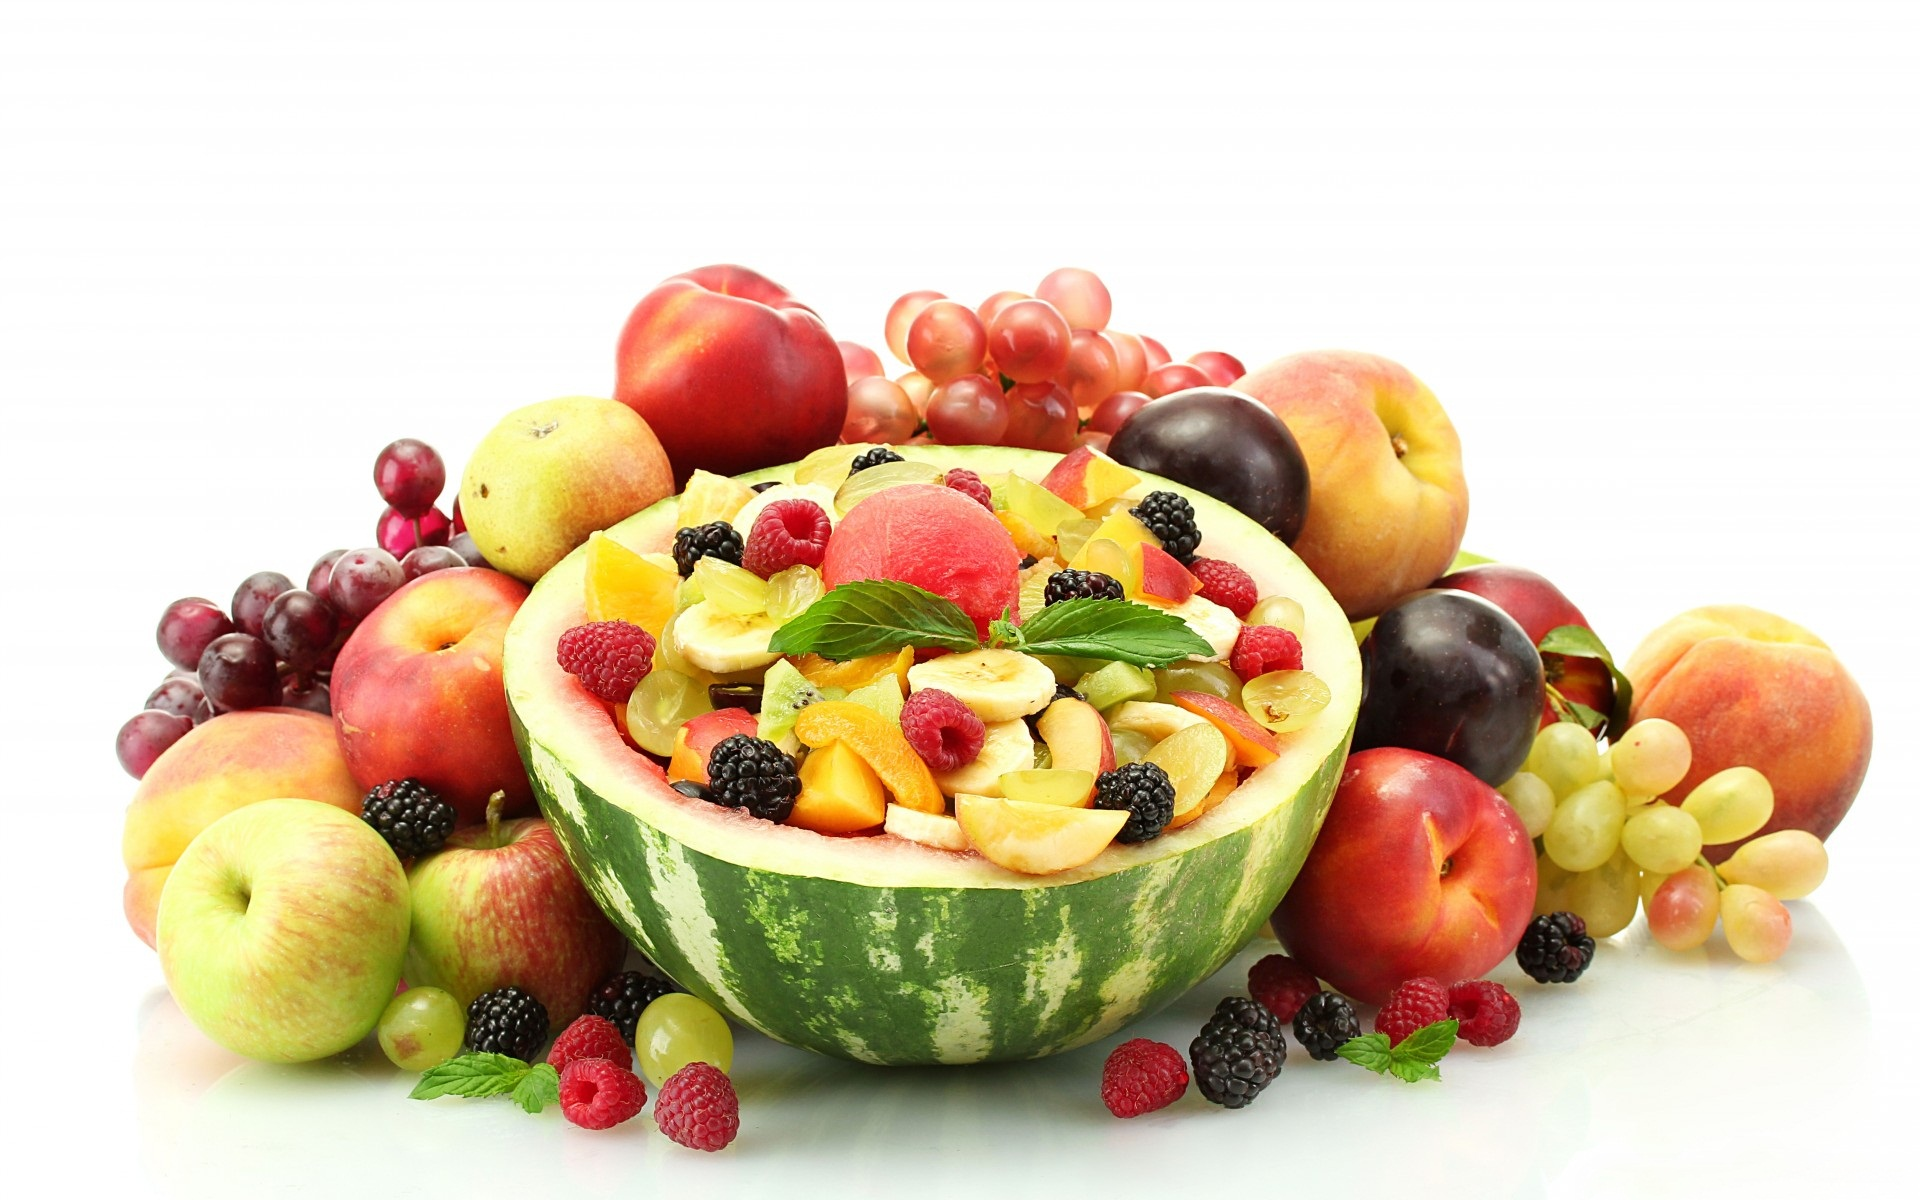 fruit salad wallpaper 42150